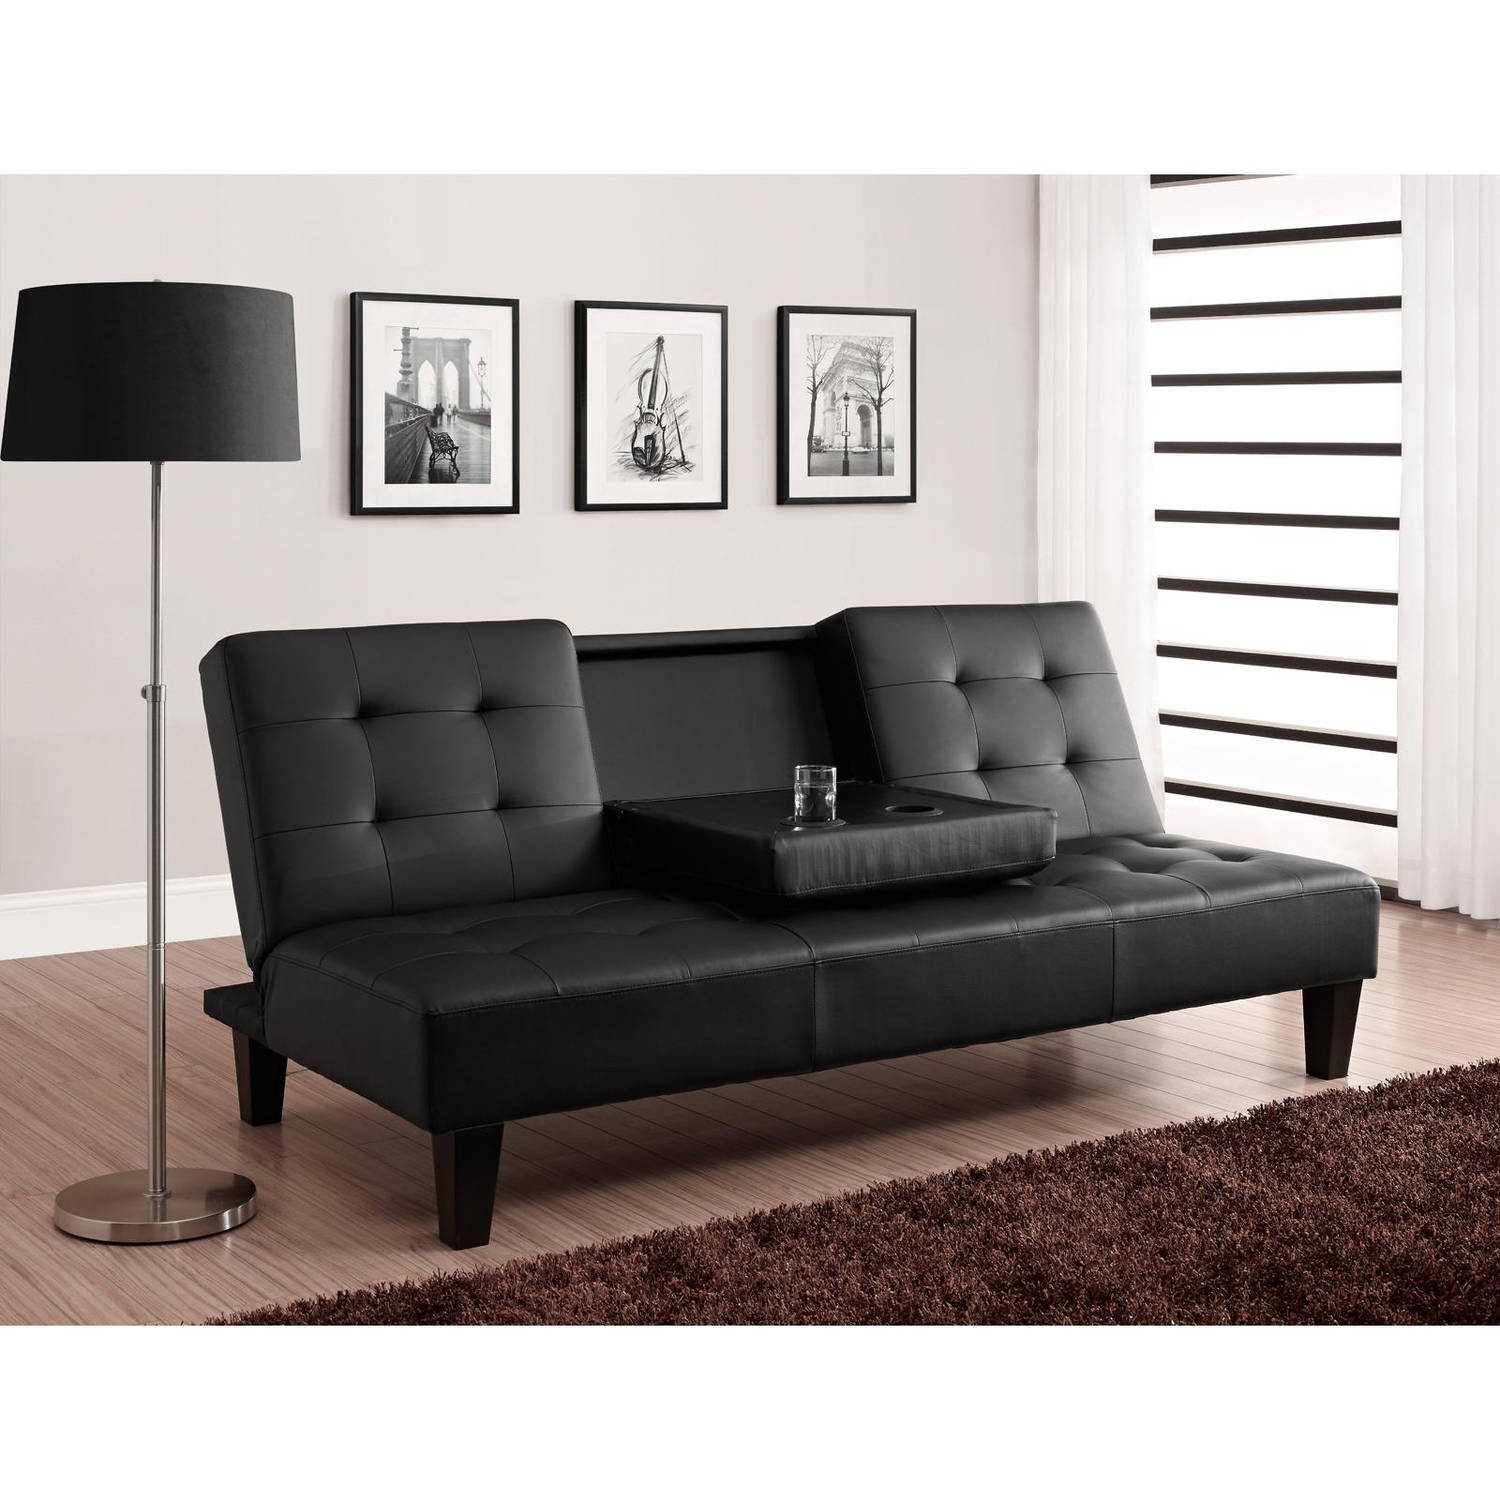 Julia Cupholder Convertible Futon Multiple Colors